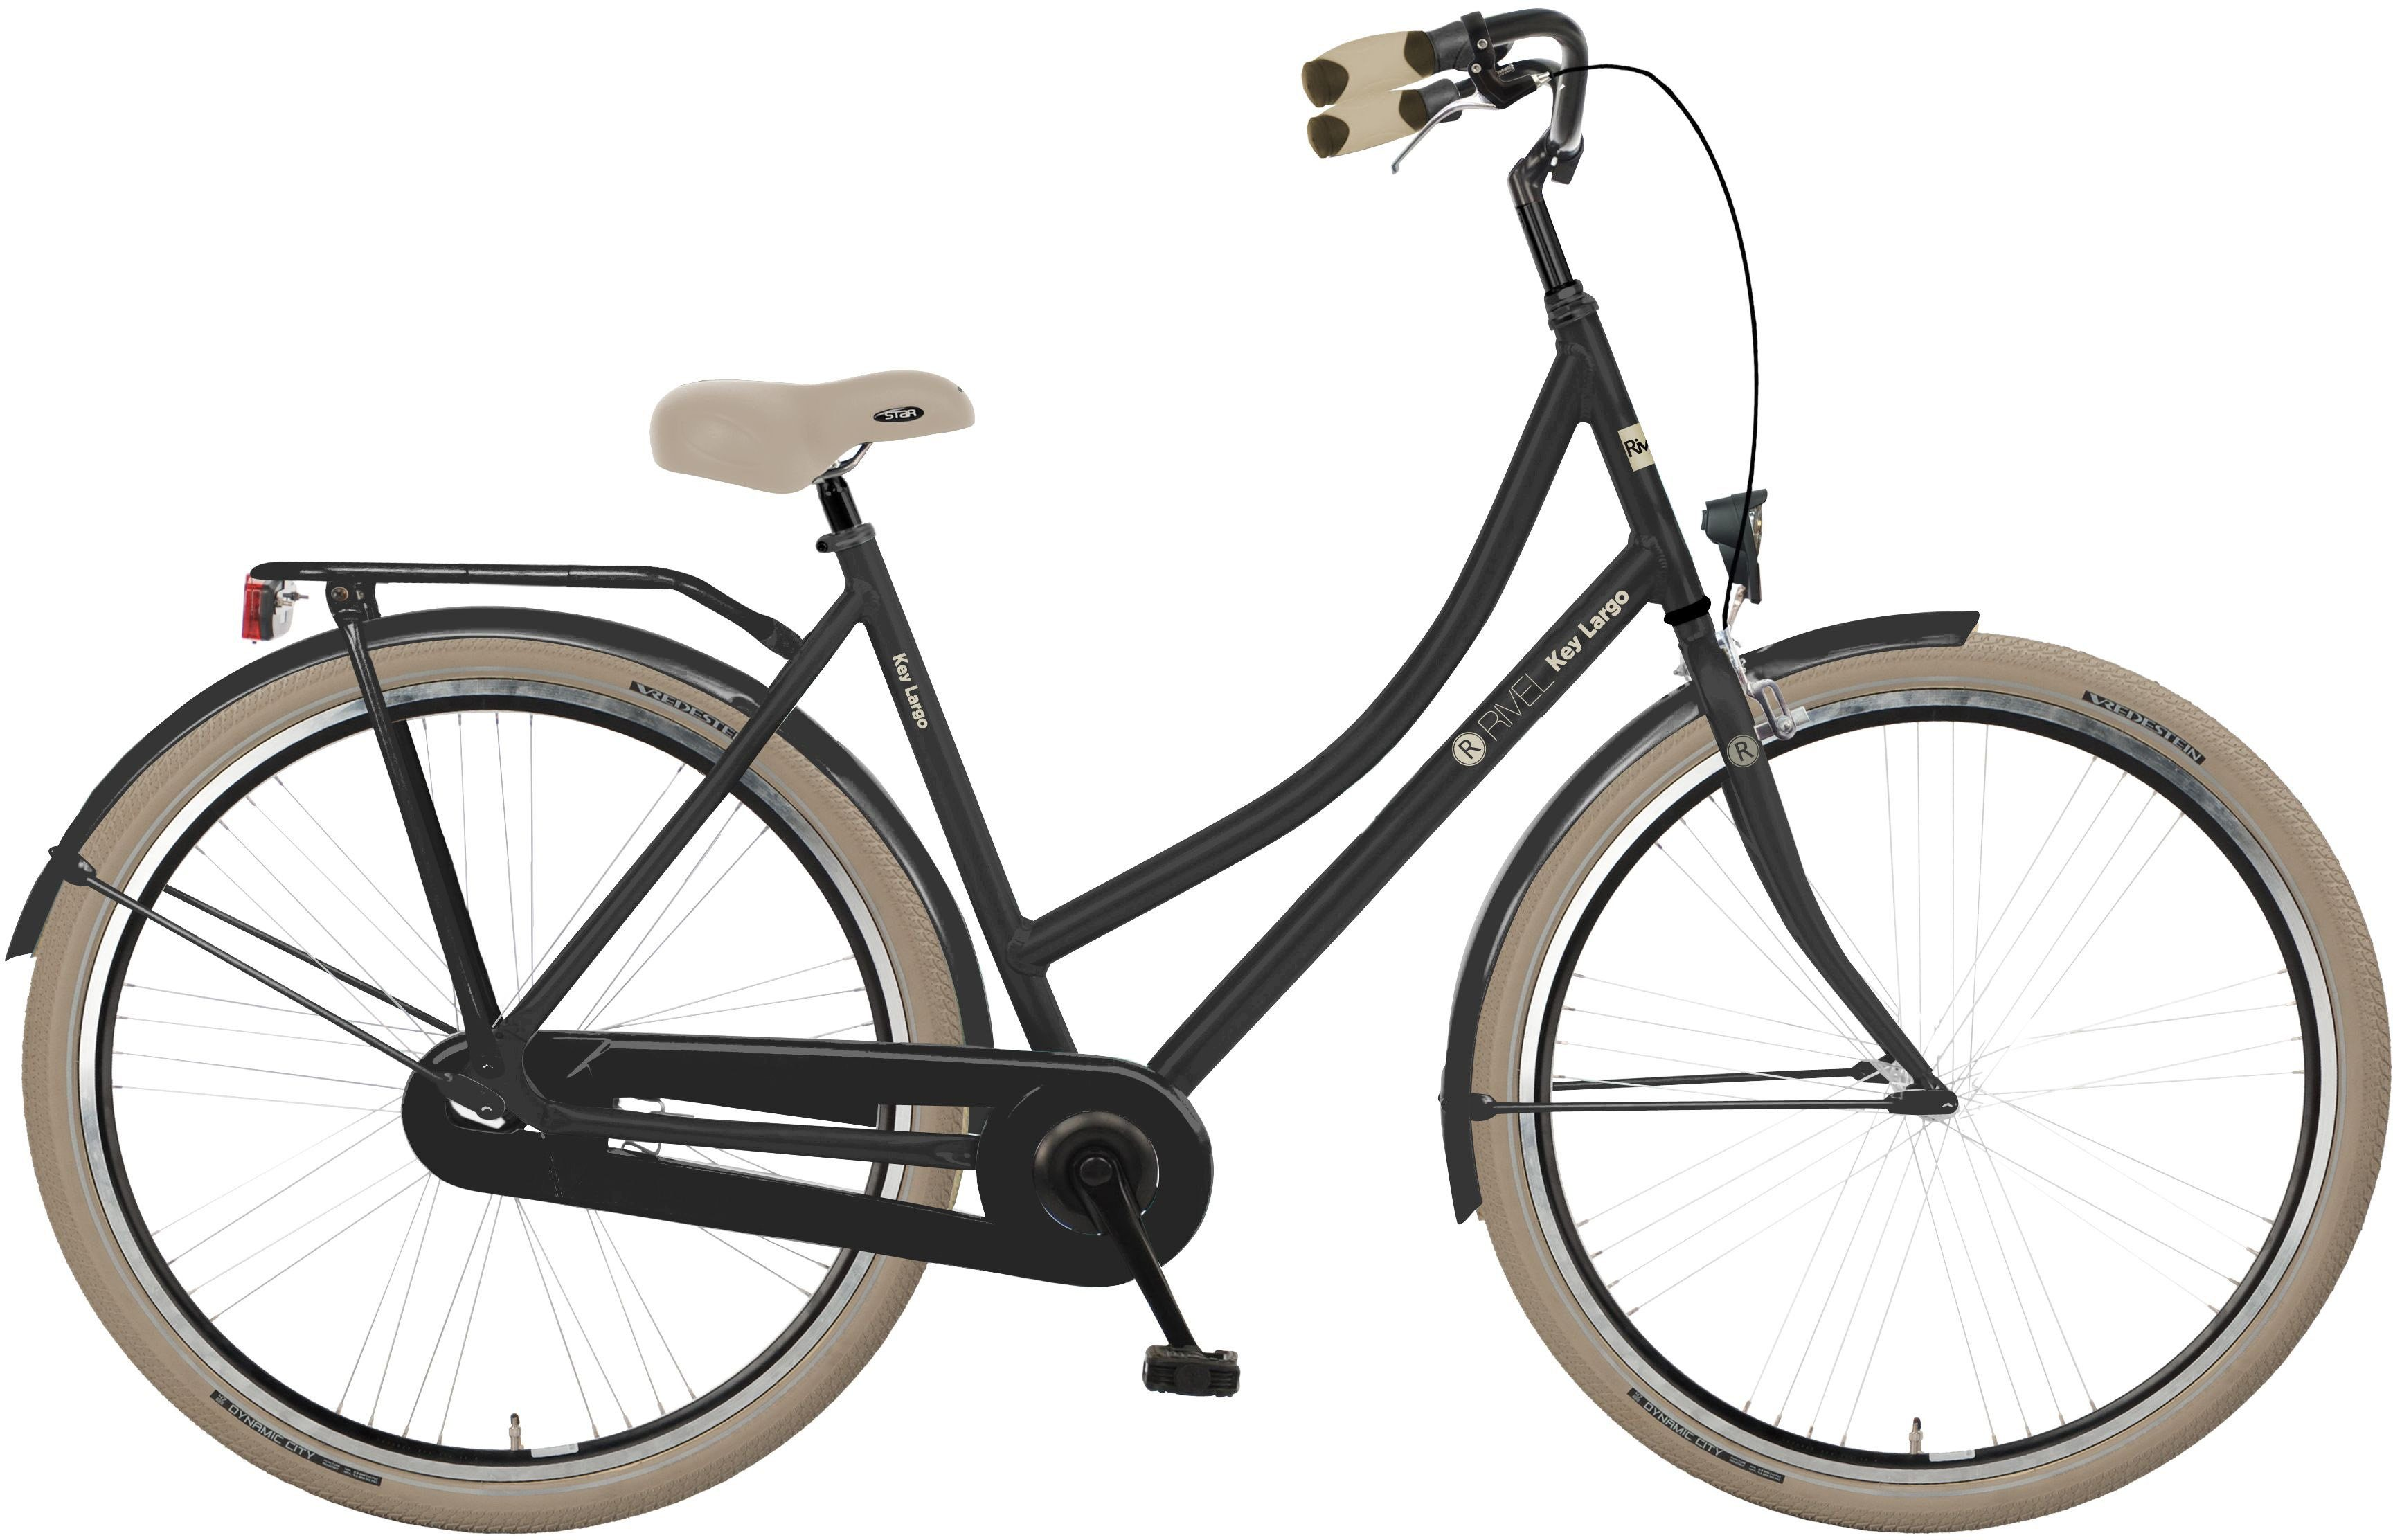 Rivel Damen Citybike, 28 Zoll, Singlespeed, Rücktritt, »Key Largo«